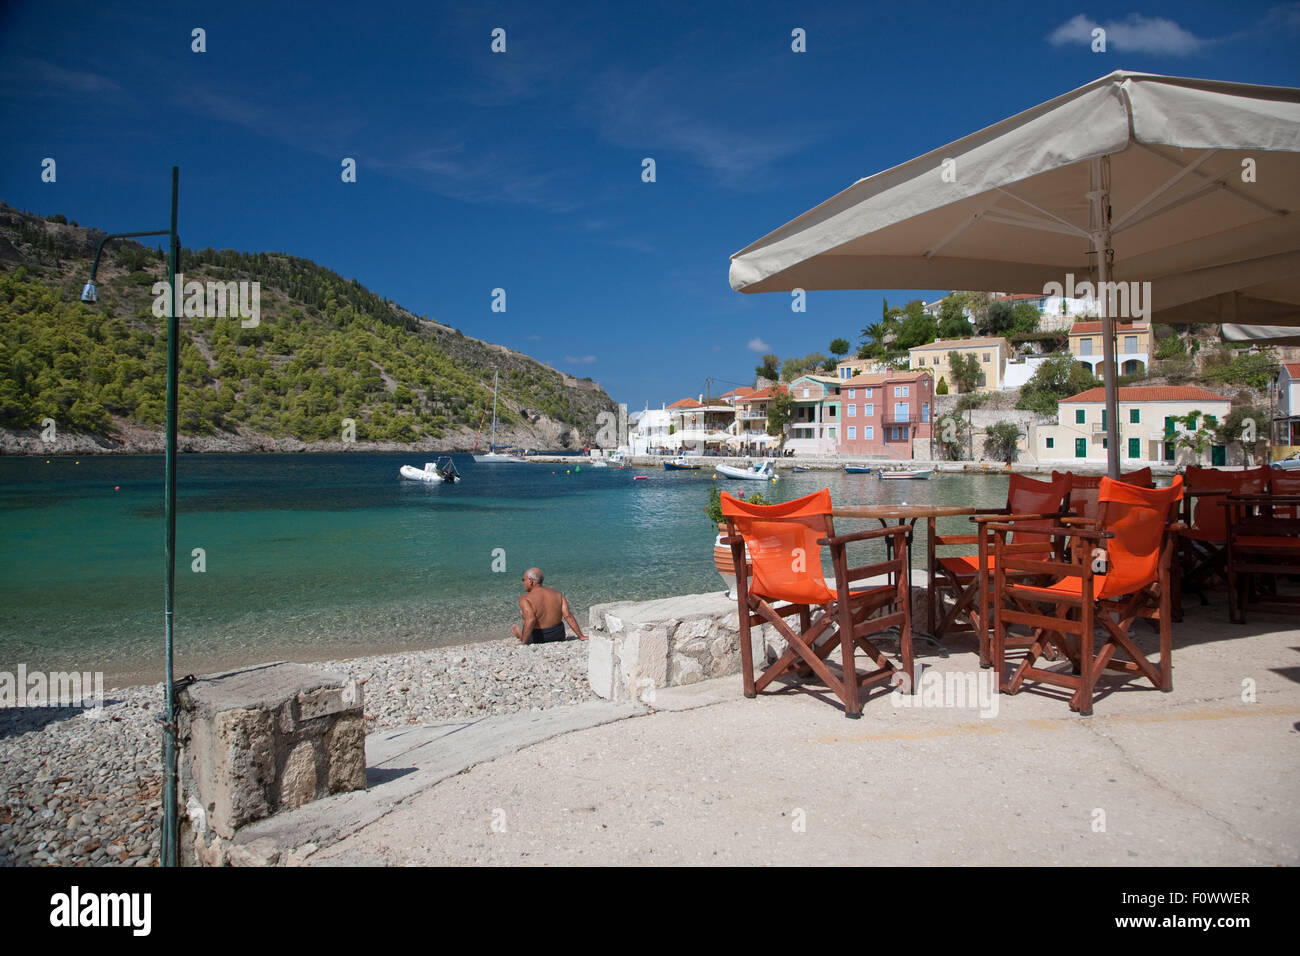 A taverna in the Bay of Assos, on the Greek Island of Kefalonia, home to the film, 'Captain Corelli's Mandolin' - Stock Image